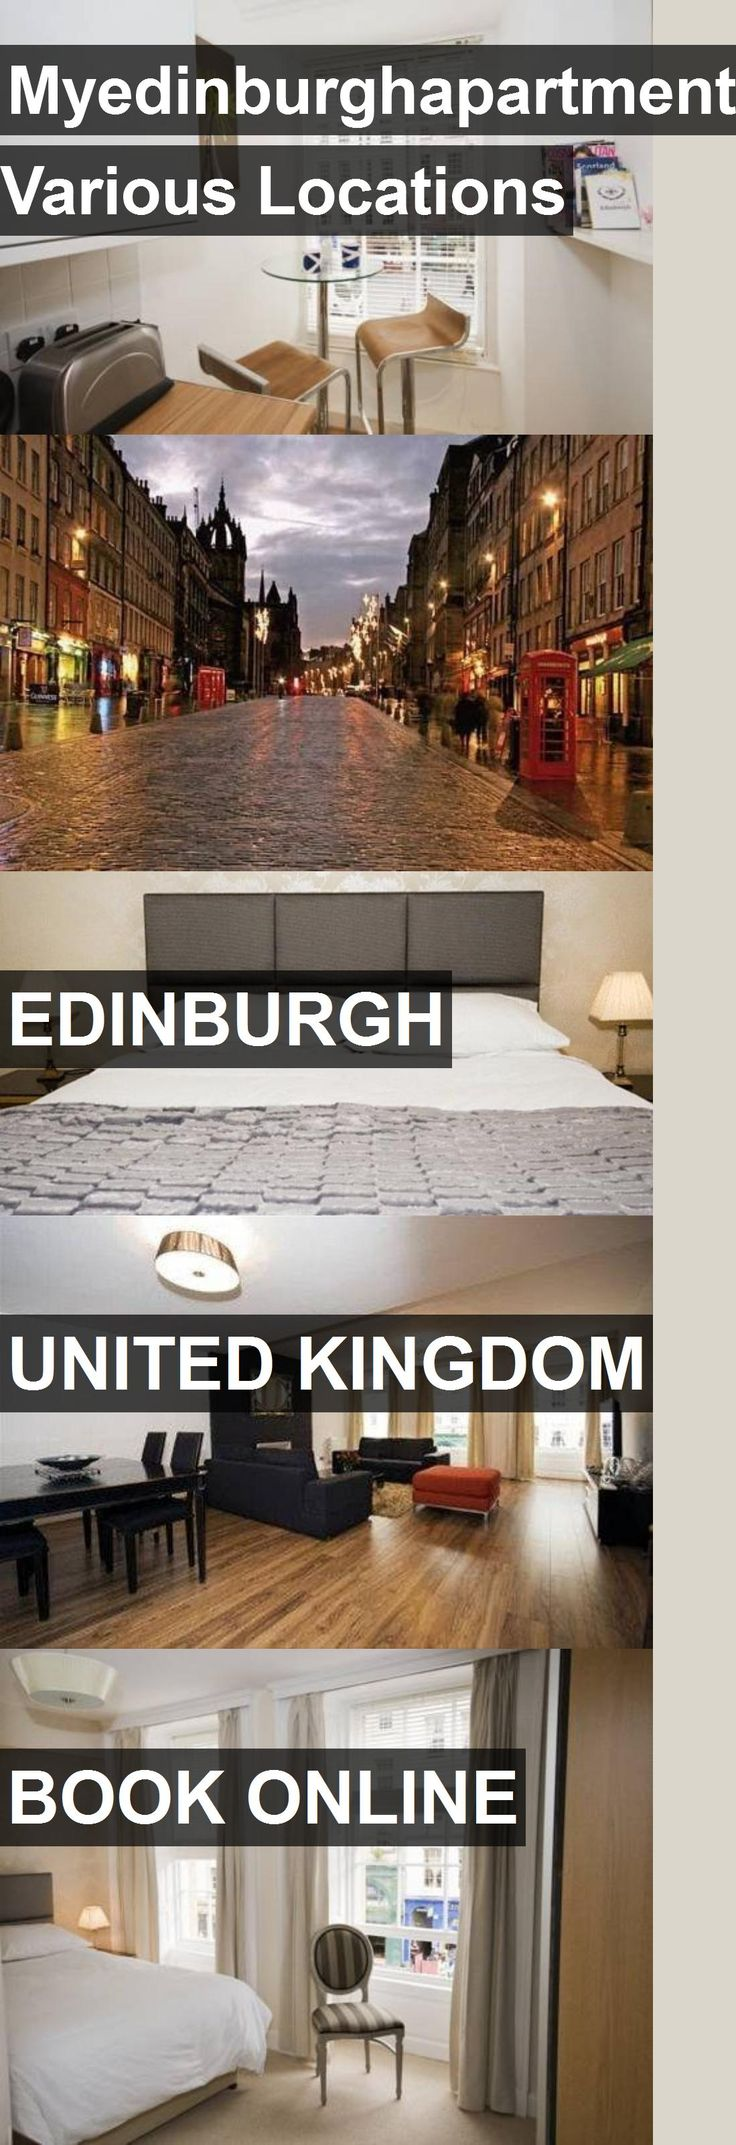 Hotel Myedinburghapartment Various Locations in Edinburgh, United Kingdom. For more information, photos, reviews and best prices please follow the link. #UnitedKingdom #Edinburgh #MyedinburghapartmentVariousLocations #hotel #travel #vacation